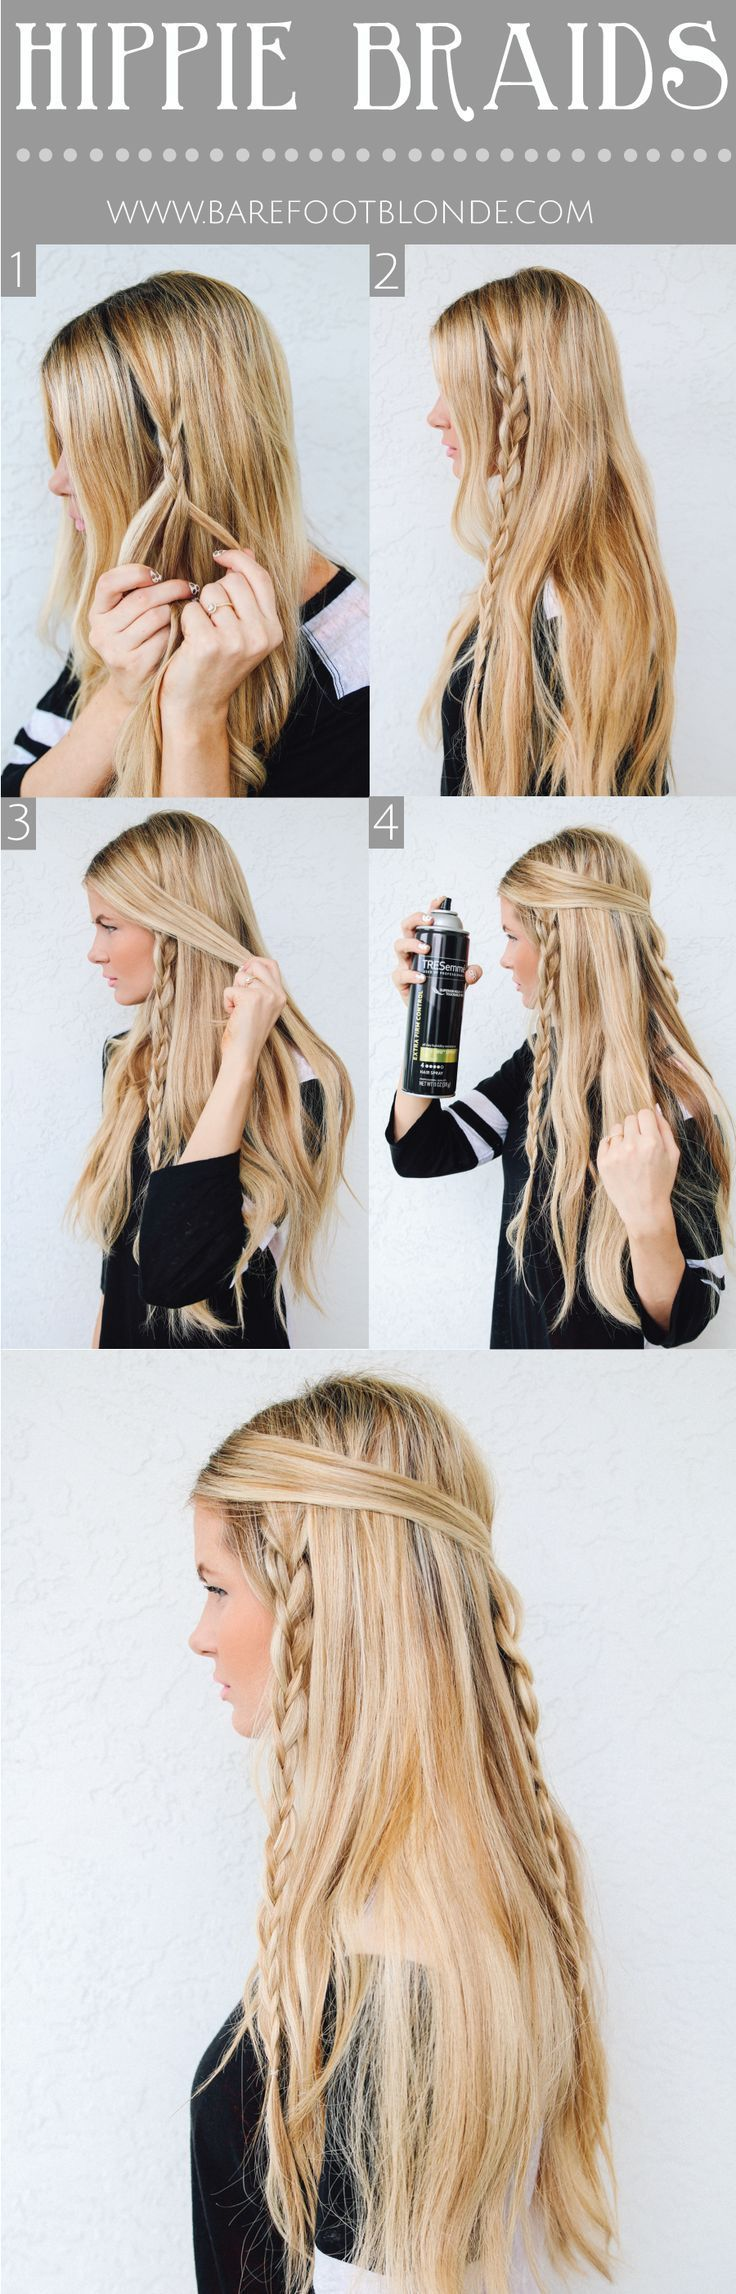 Boho braids and subtle waves